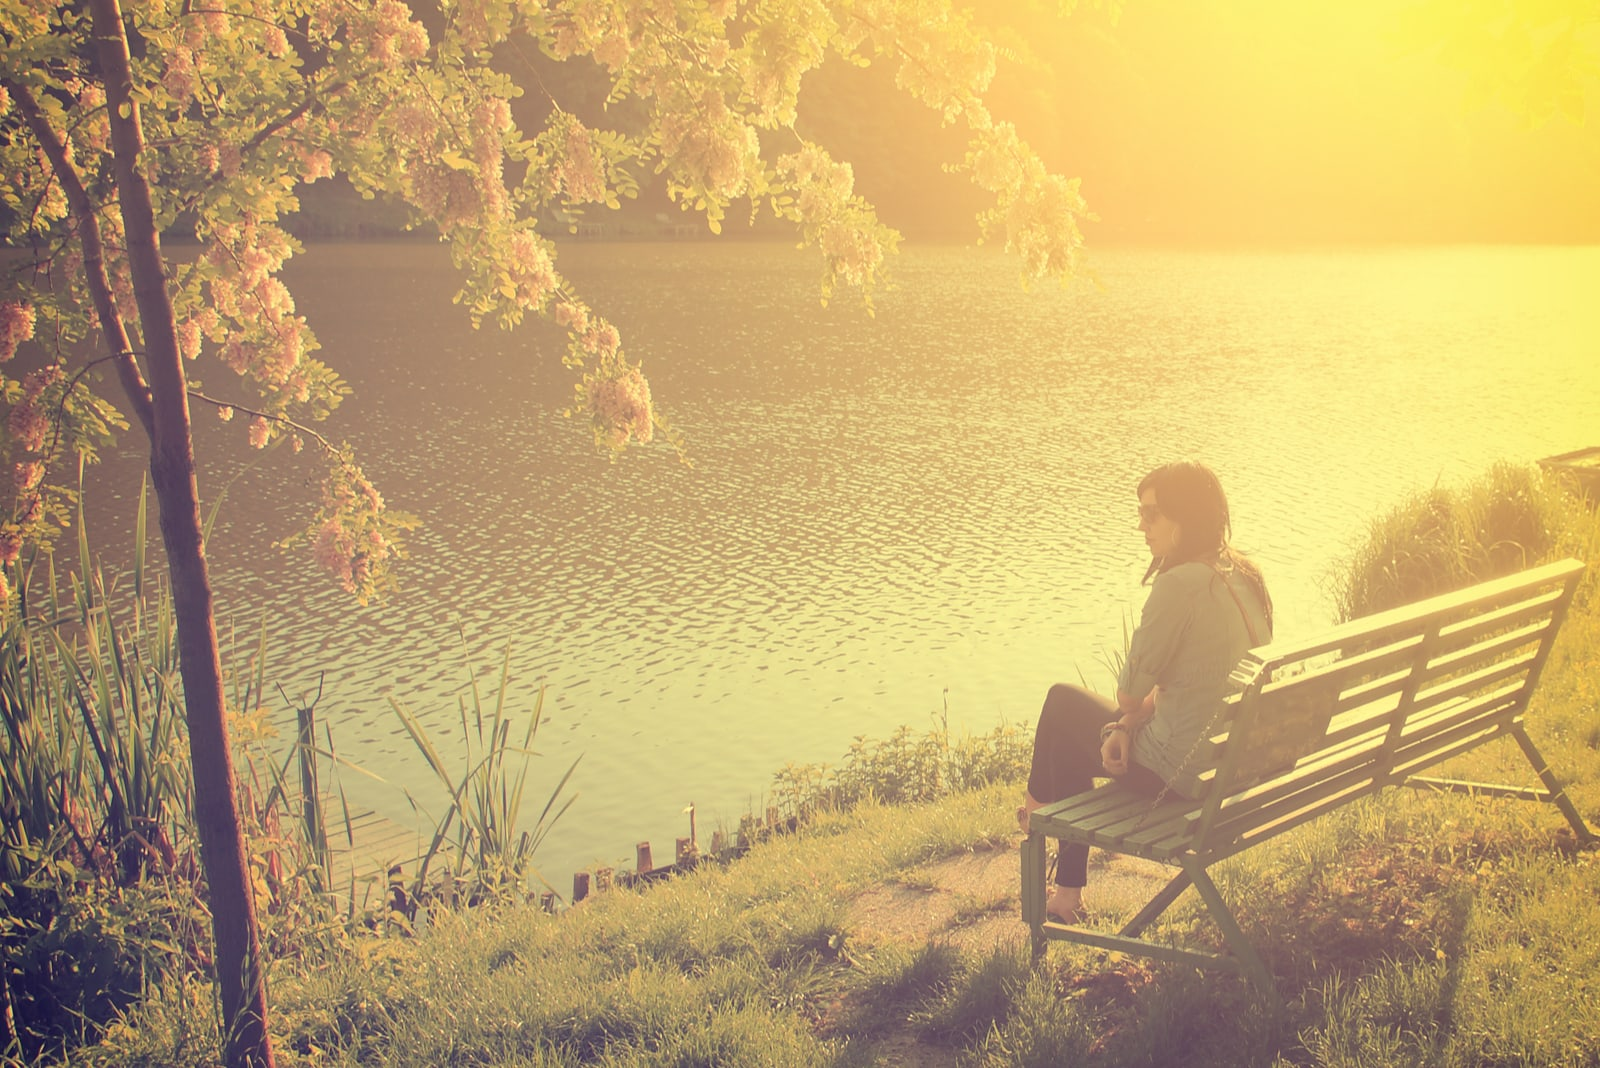 at sunset a woman sits alone on a bench by the river